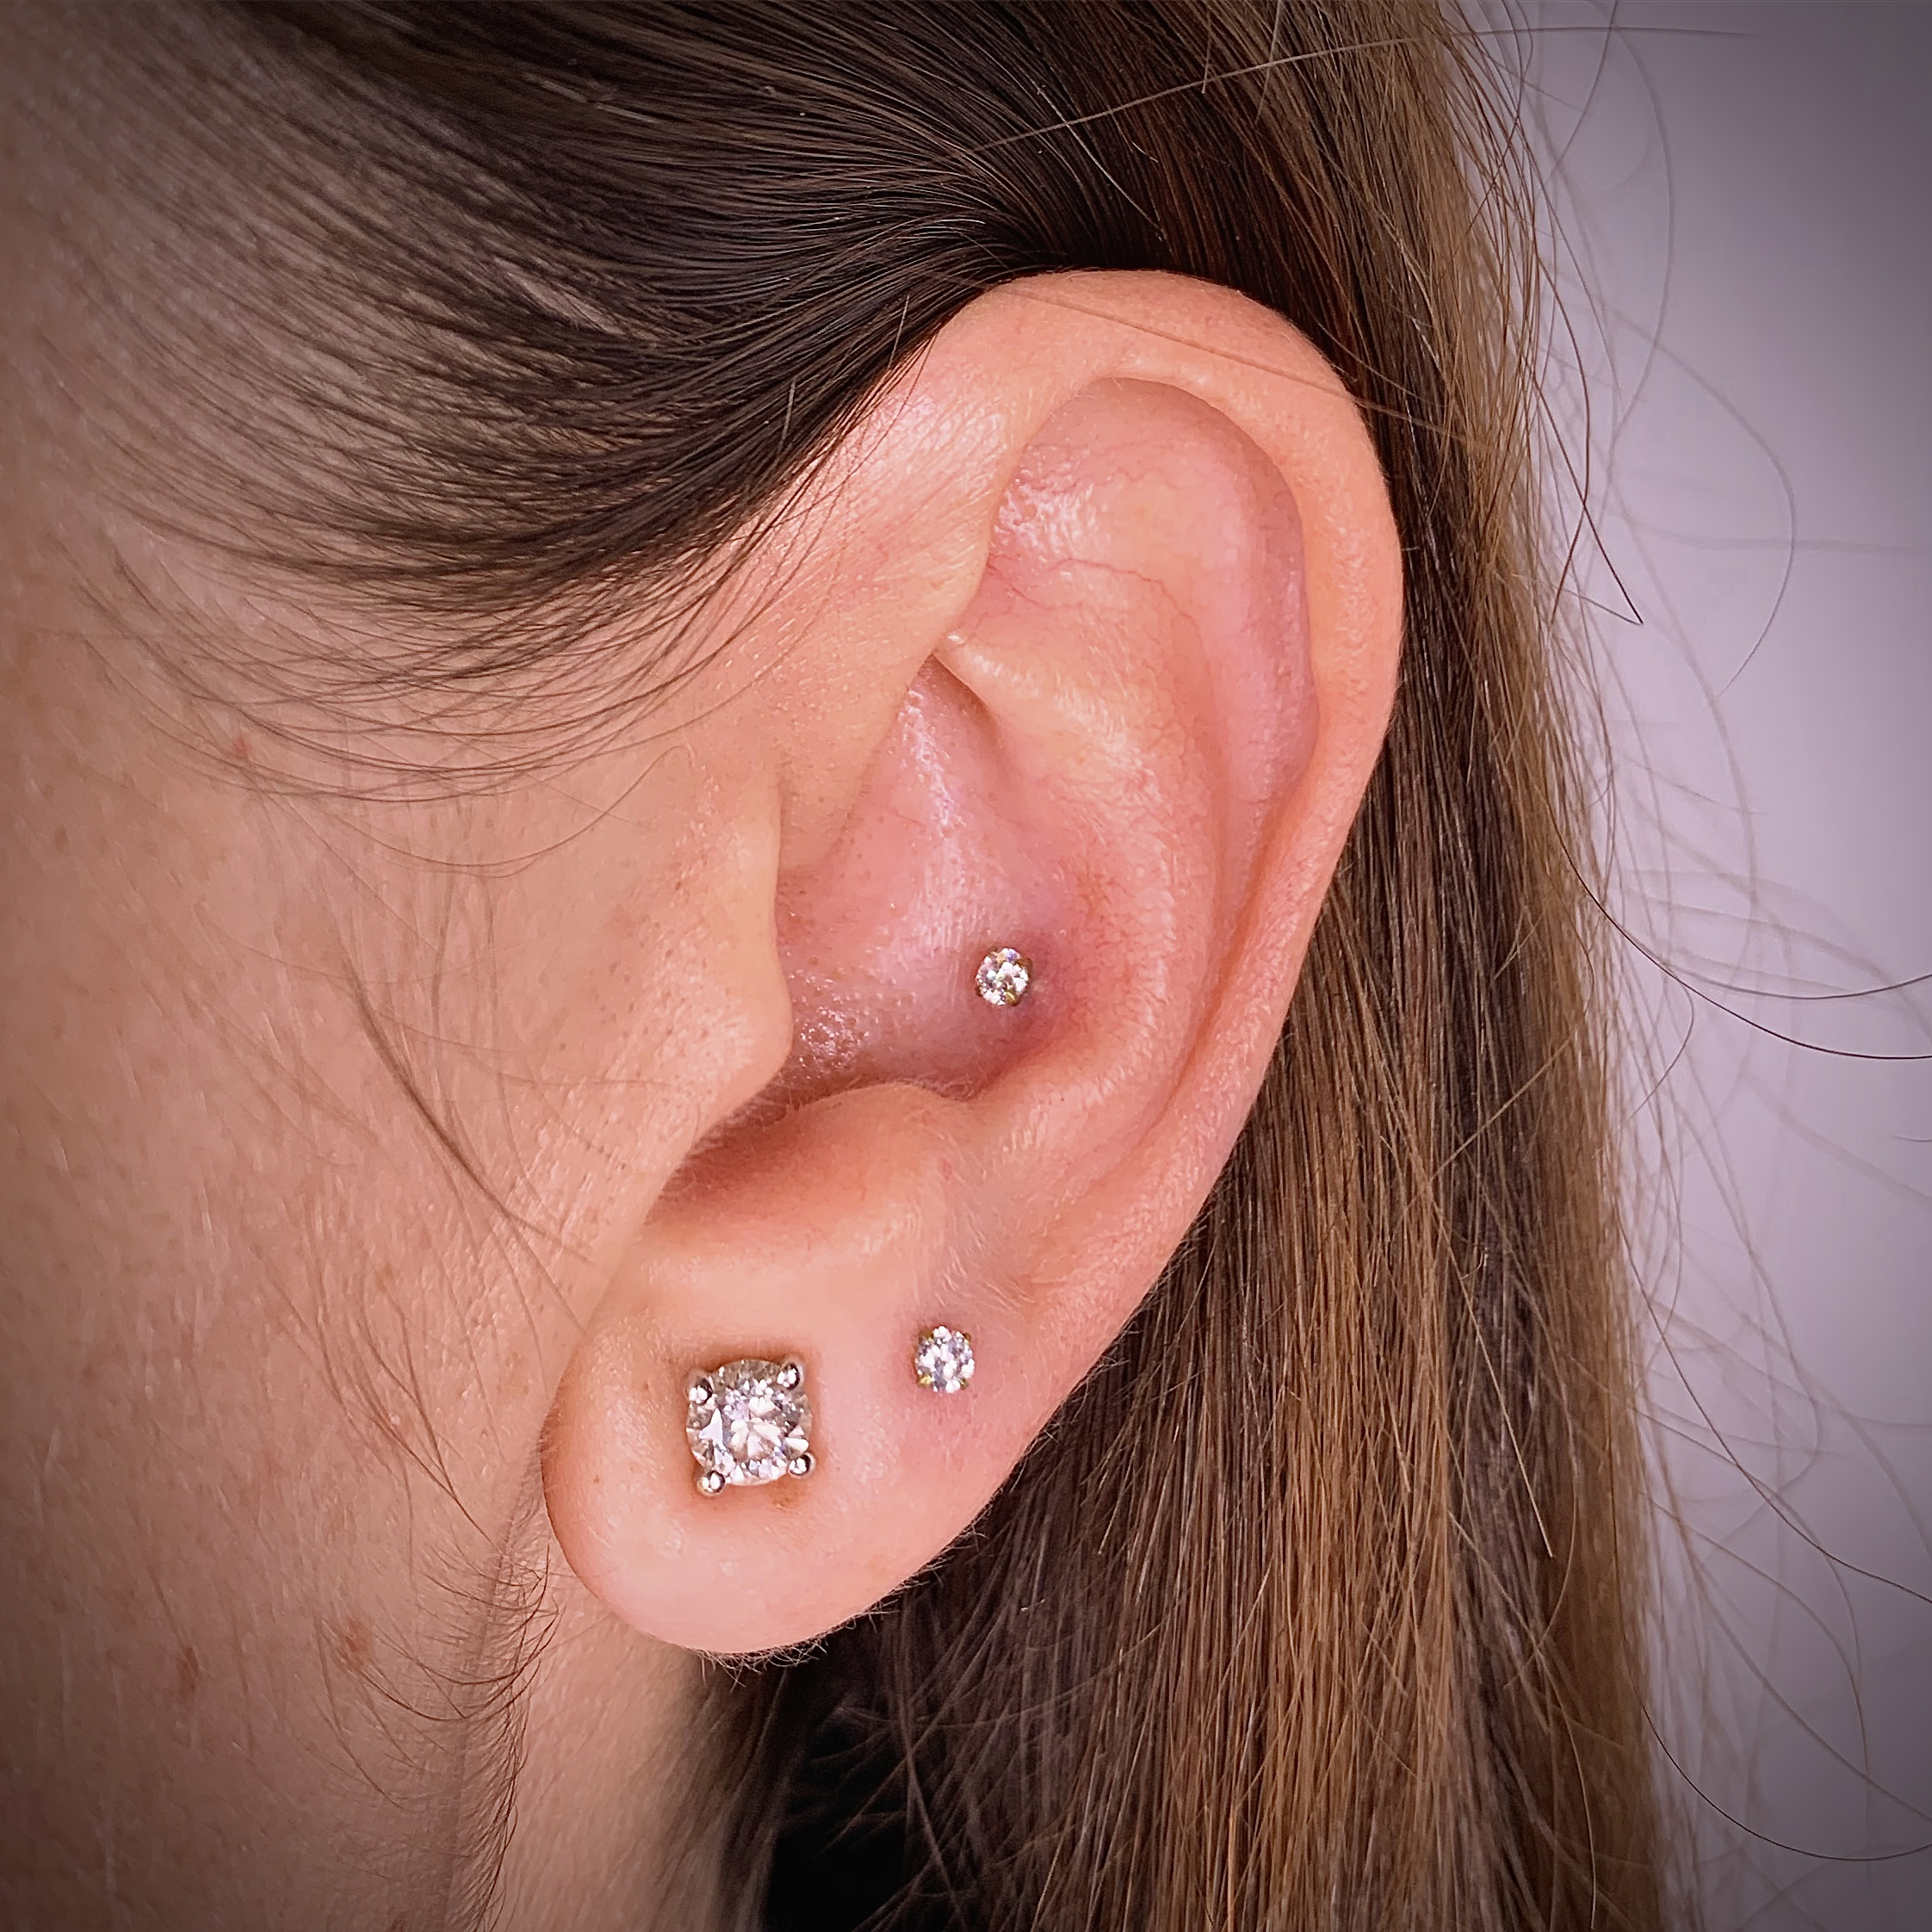 Ear piercing, Conch piercing and second uper lobe jewelry are titanium and Swarovski zirconia. Piercings Barcelona